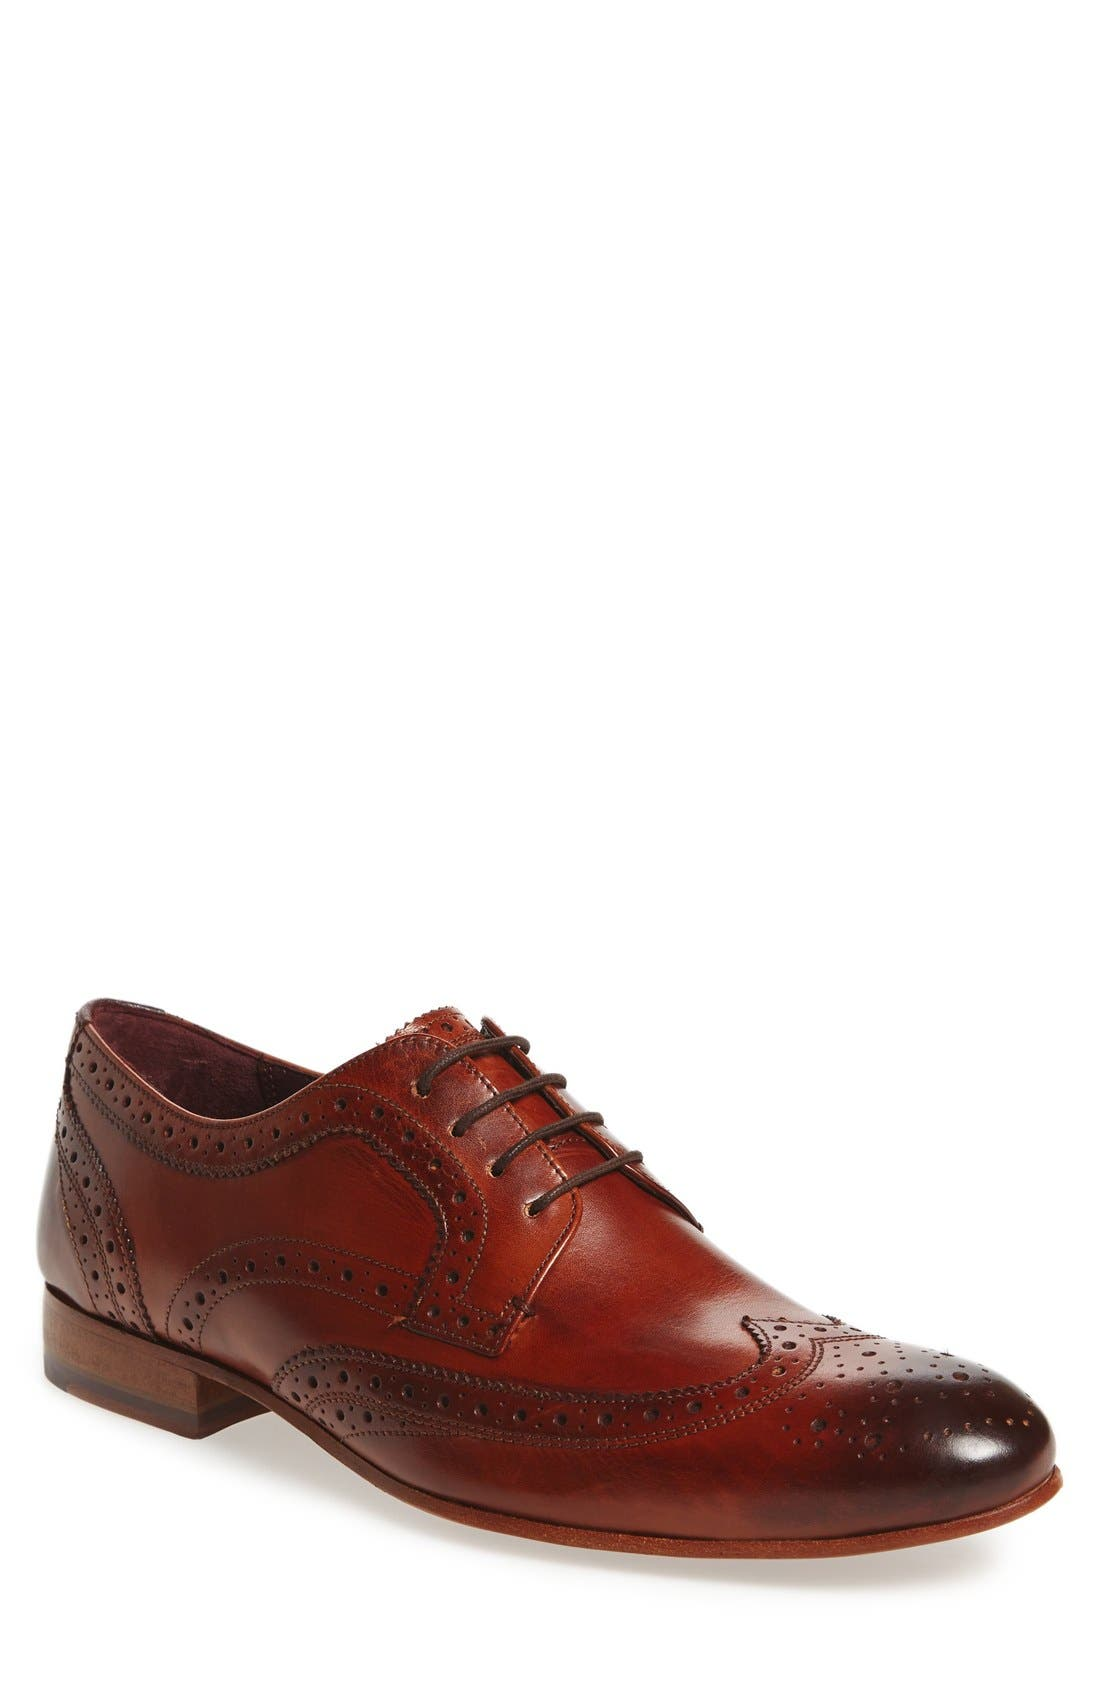 'Gryene' Wingtip Oxford,                             Main thumbnail 3, color,